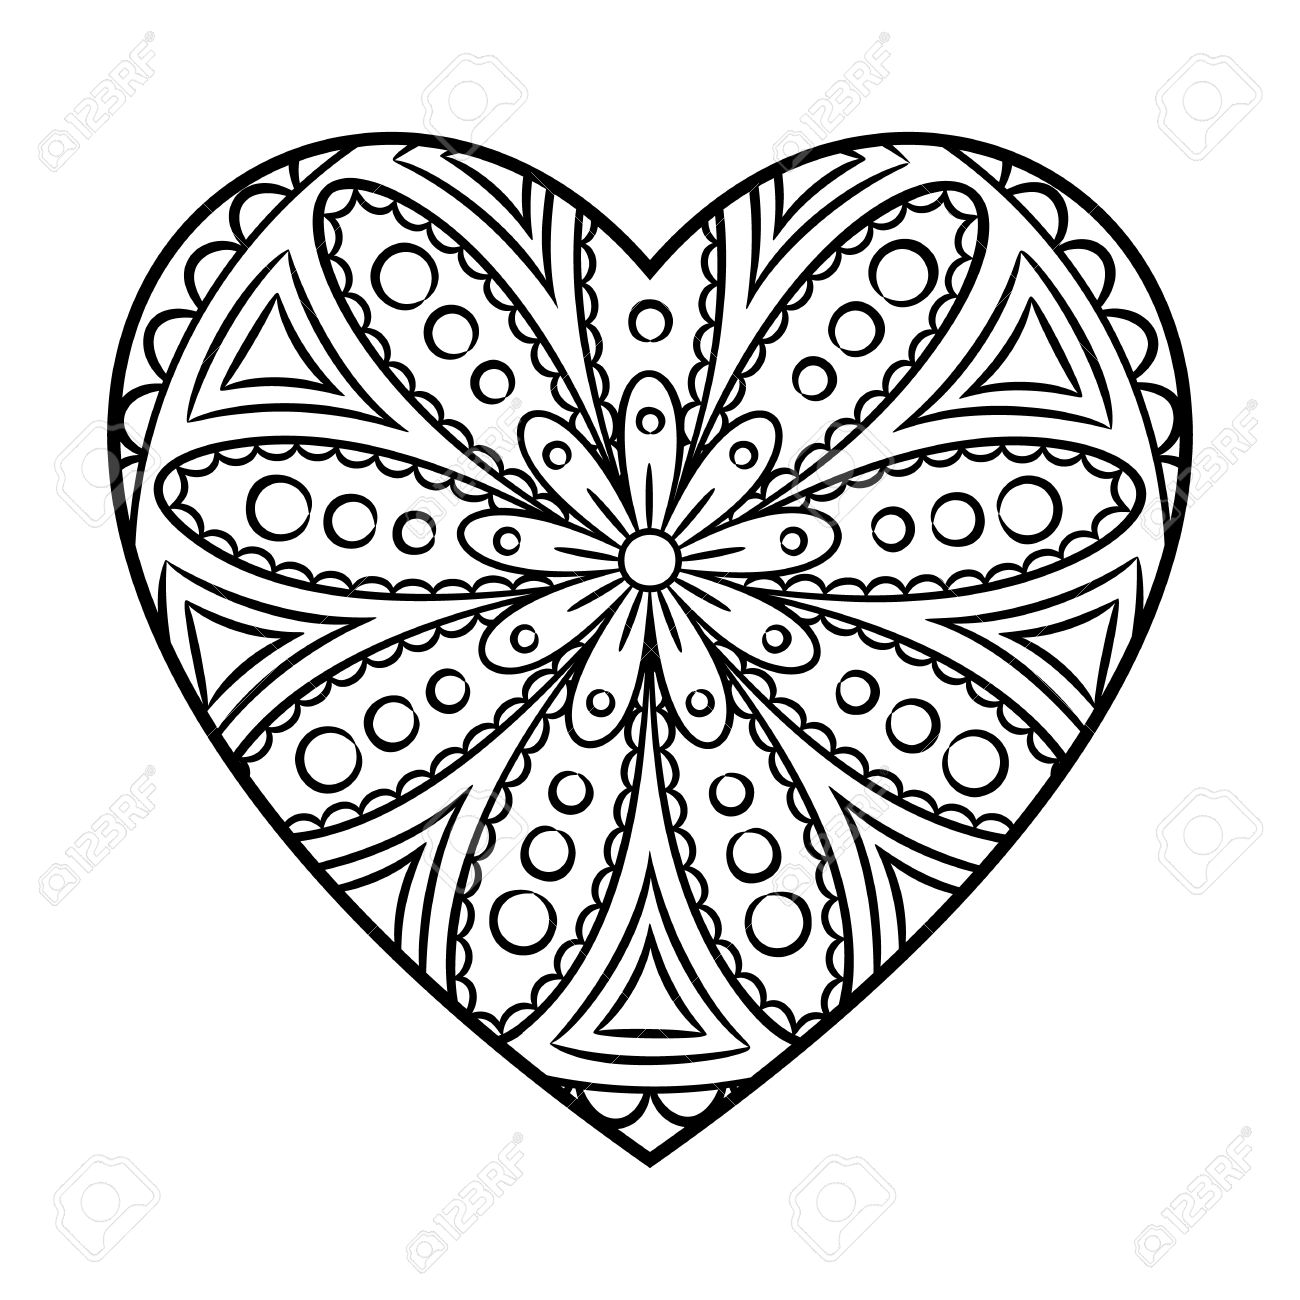 Doodle Heart Mandala Coloring Page. Outline Floral Design Element In A  Heart Shape. Coloring